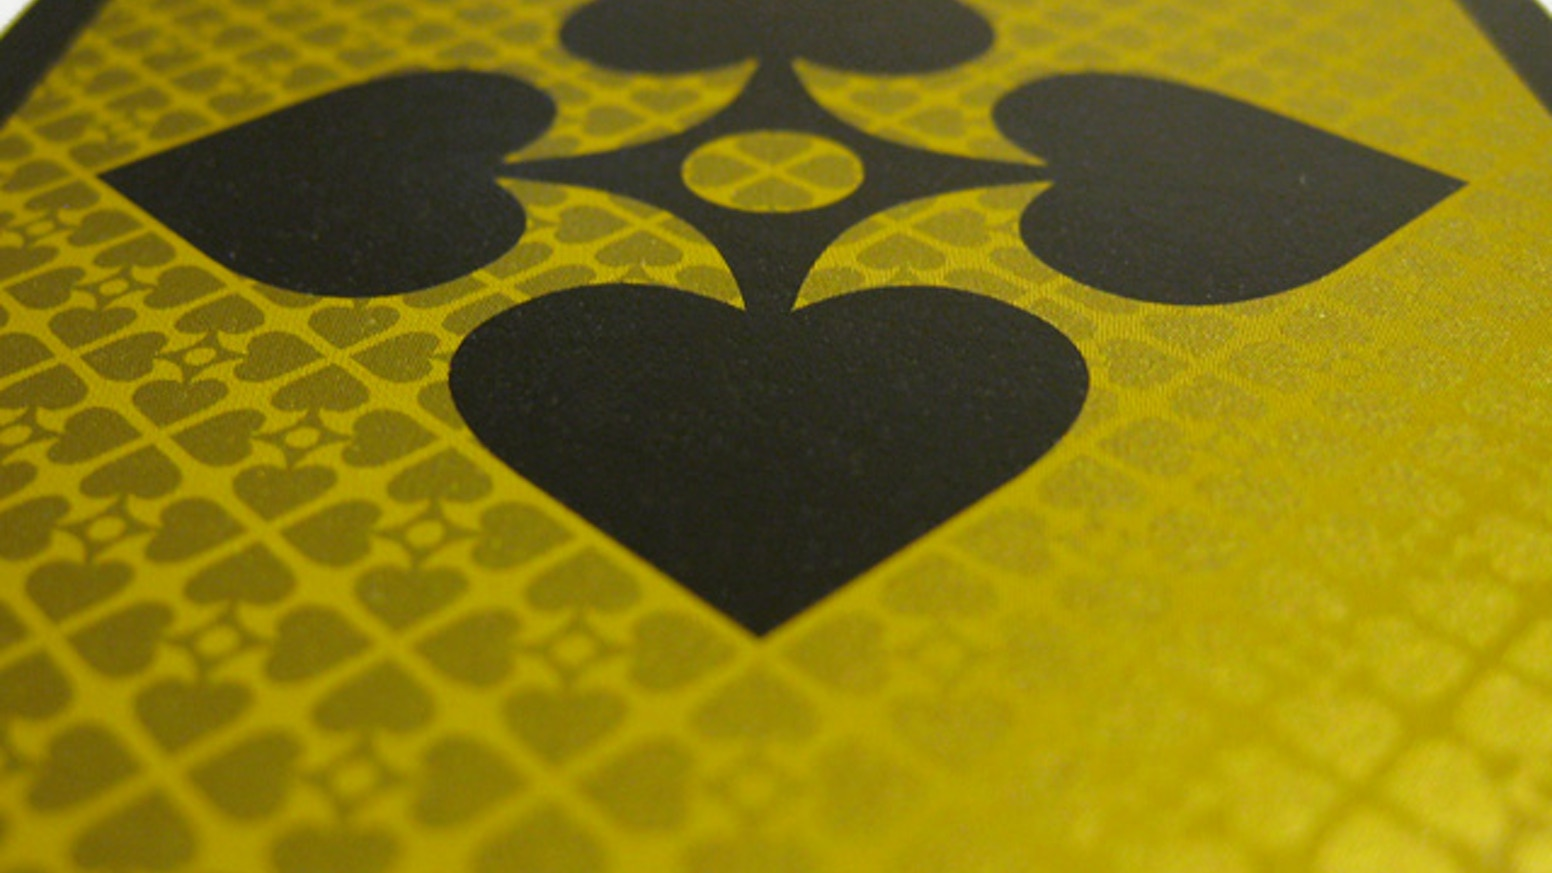 The only 100% rotationally symmetrical deck of playing cards ever designed.